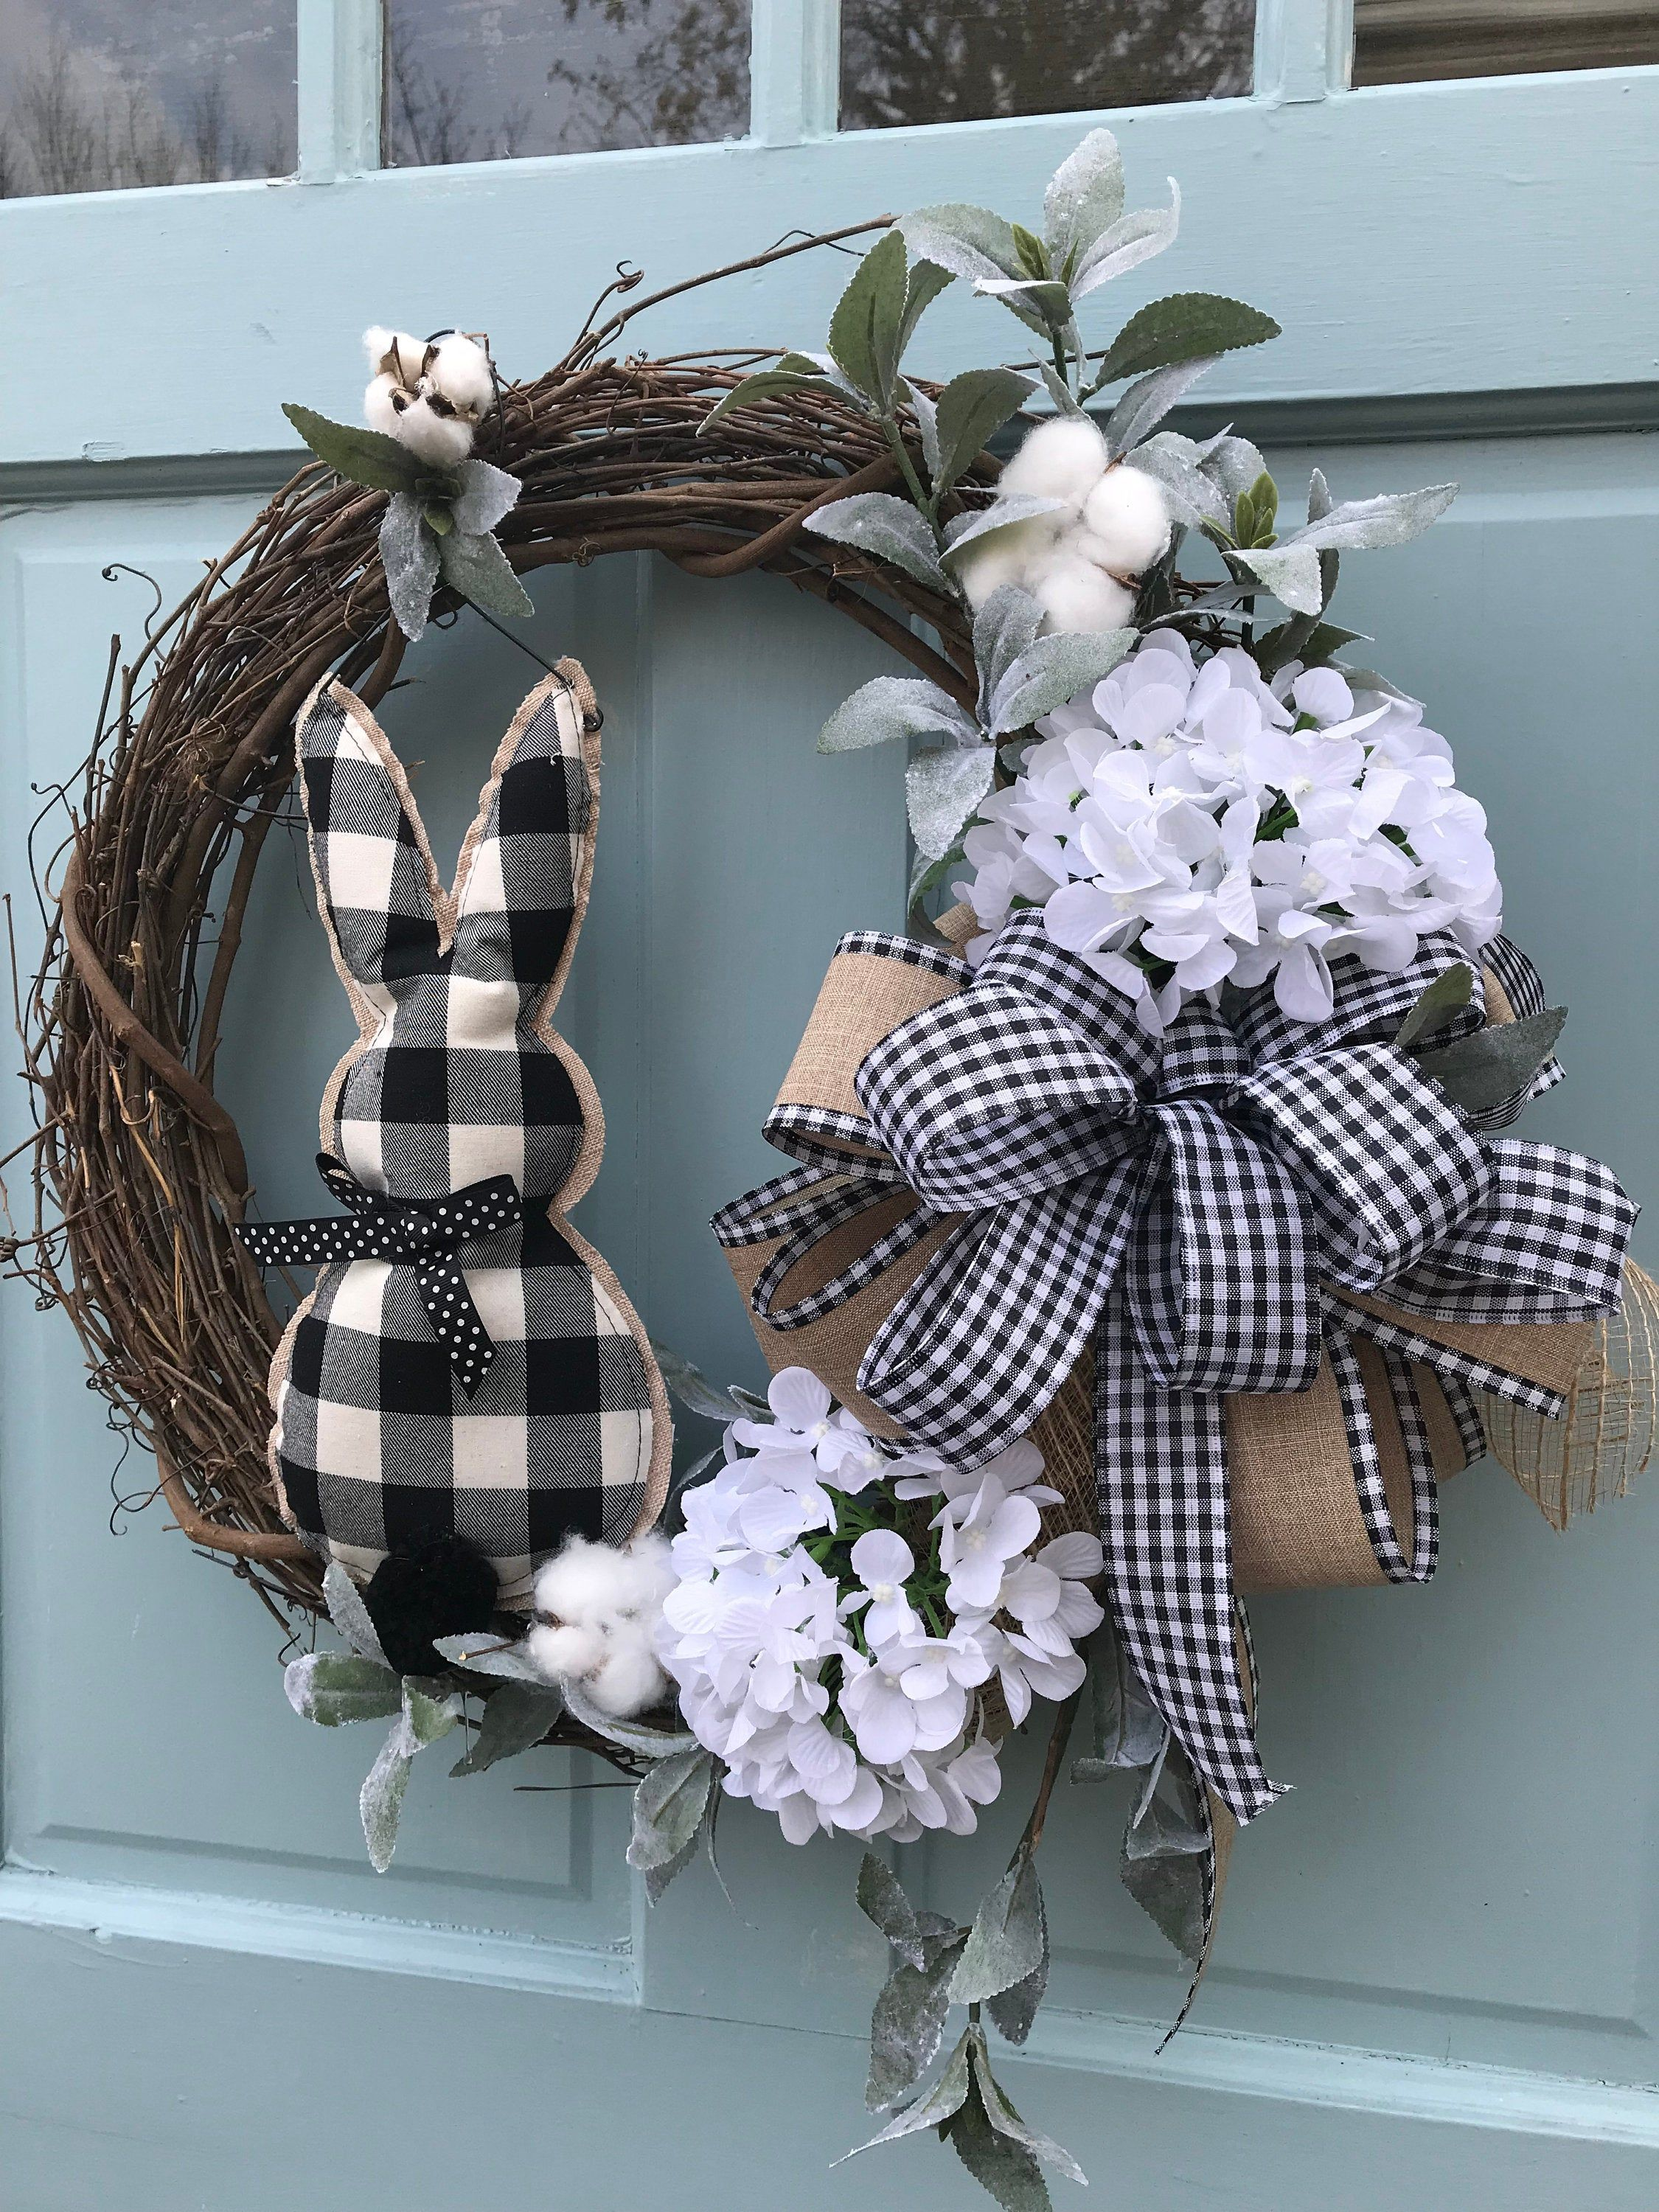 Photo of Farmhouse white cotton Summer Grapevine Wreath for Door, Wreaths, wreath for front door, Farmhouse wreath for front door, Lambs Ear Wreath